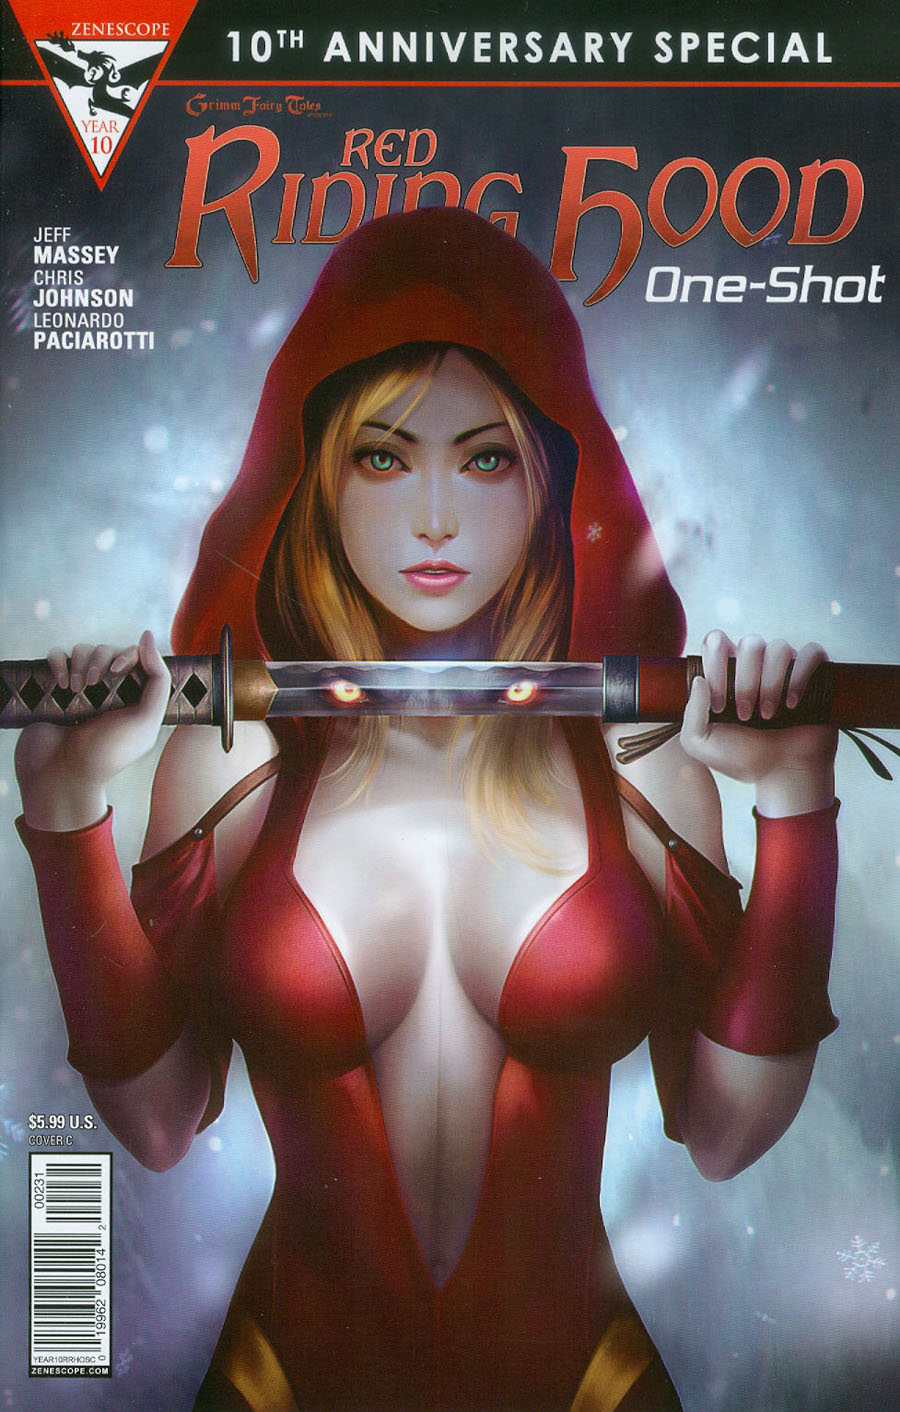 Grimm Fairy Tales Presents 10th Anniversary Special #2 Red Riding Hood Cover C Meguro